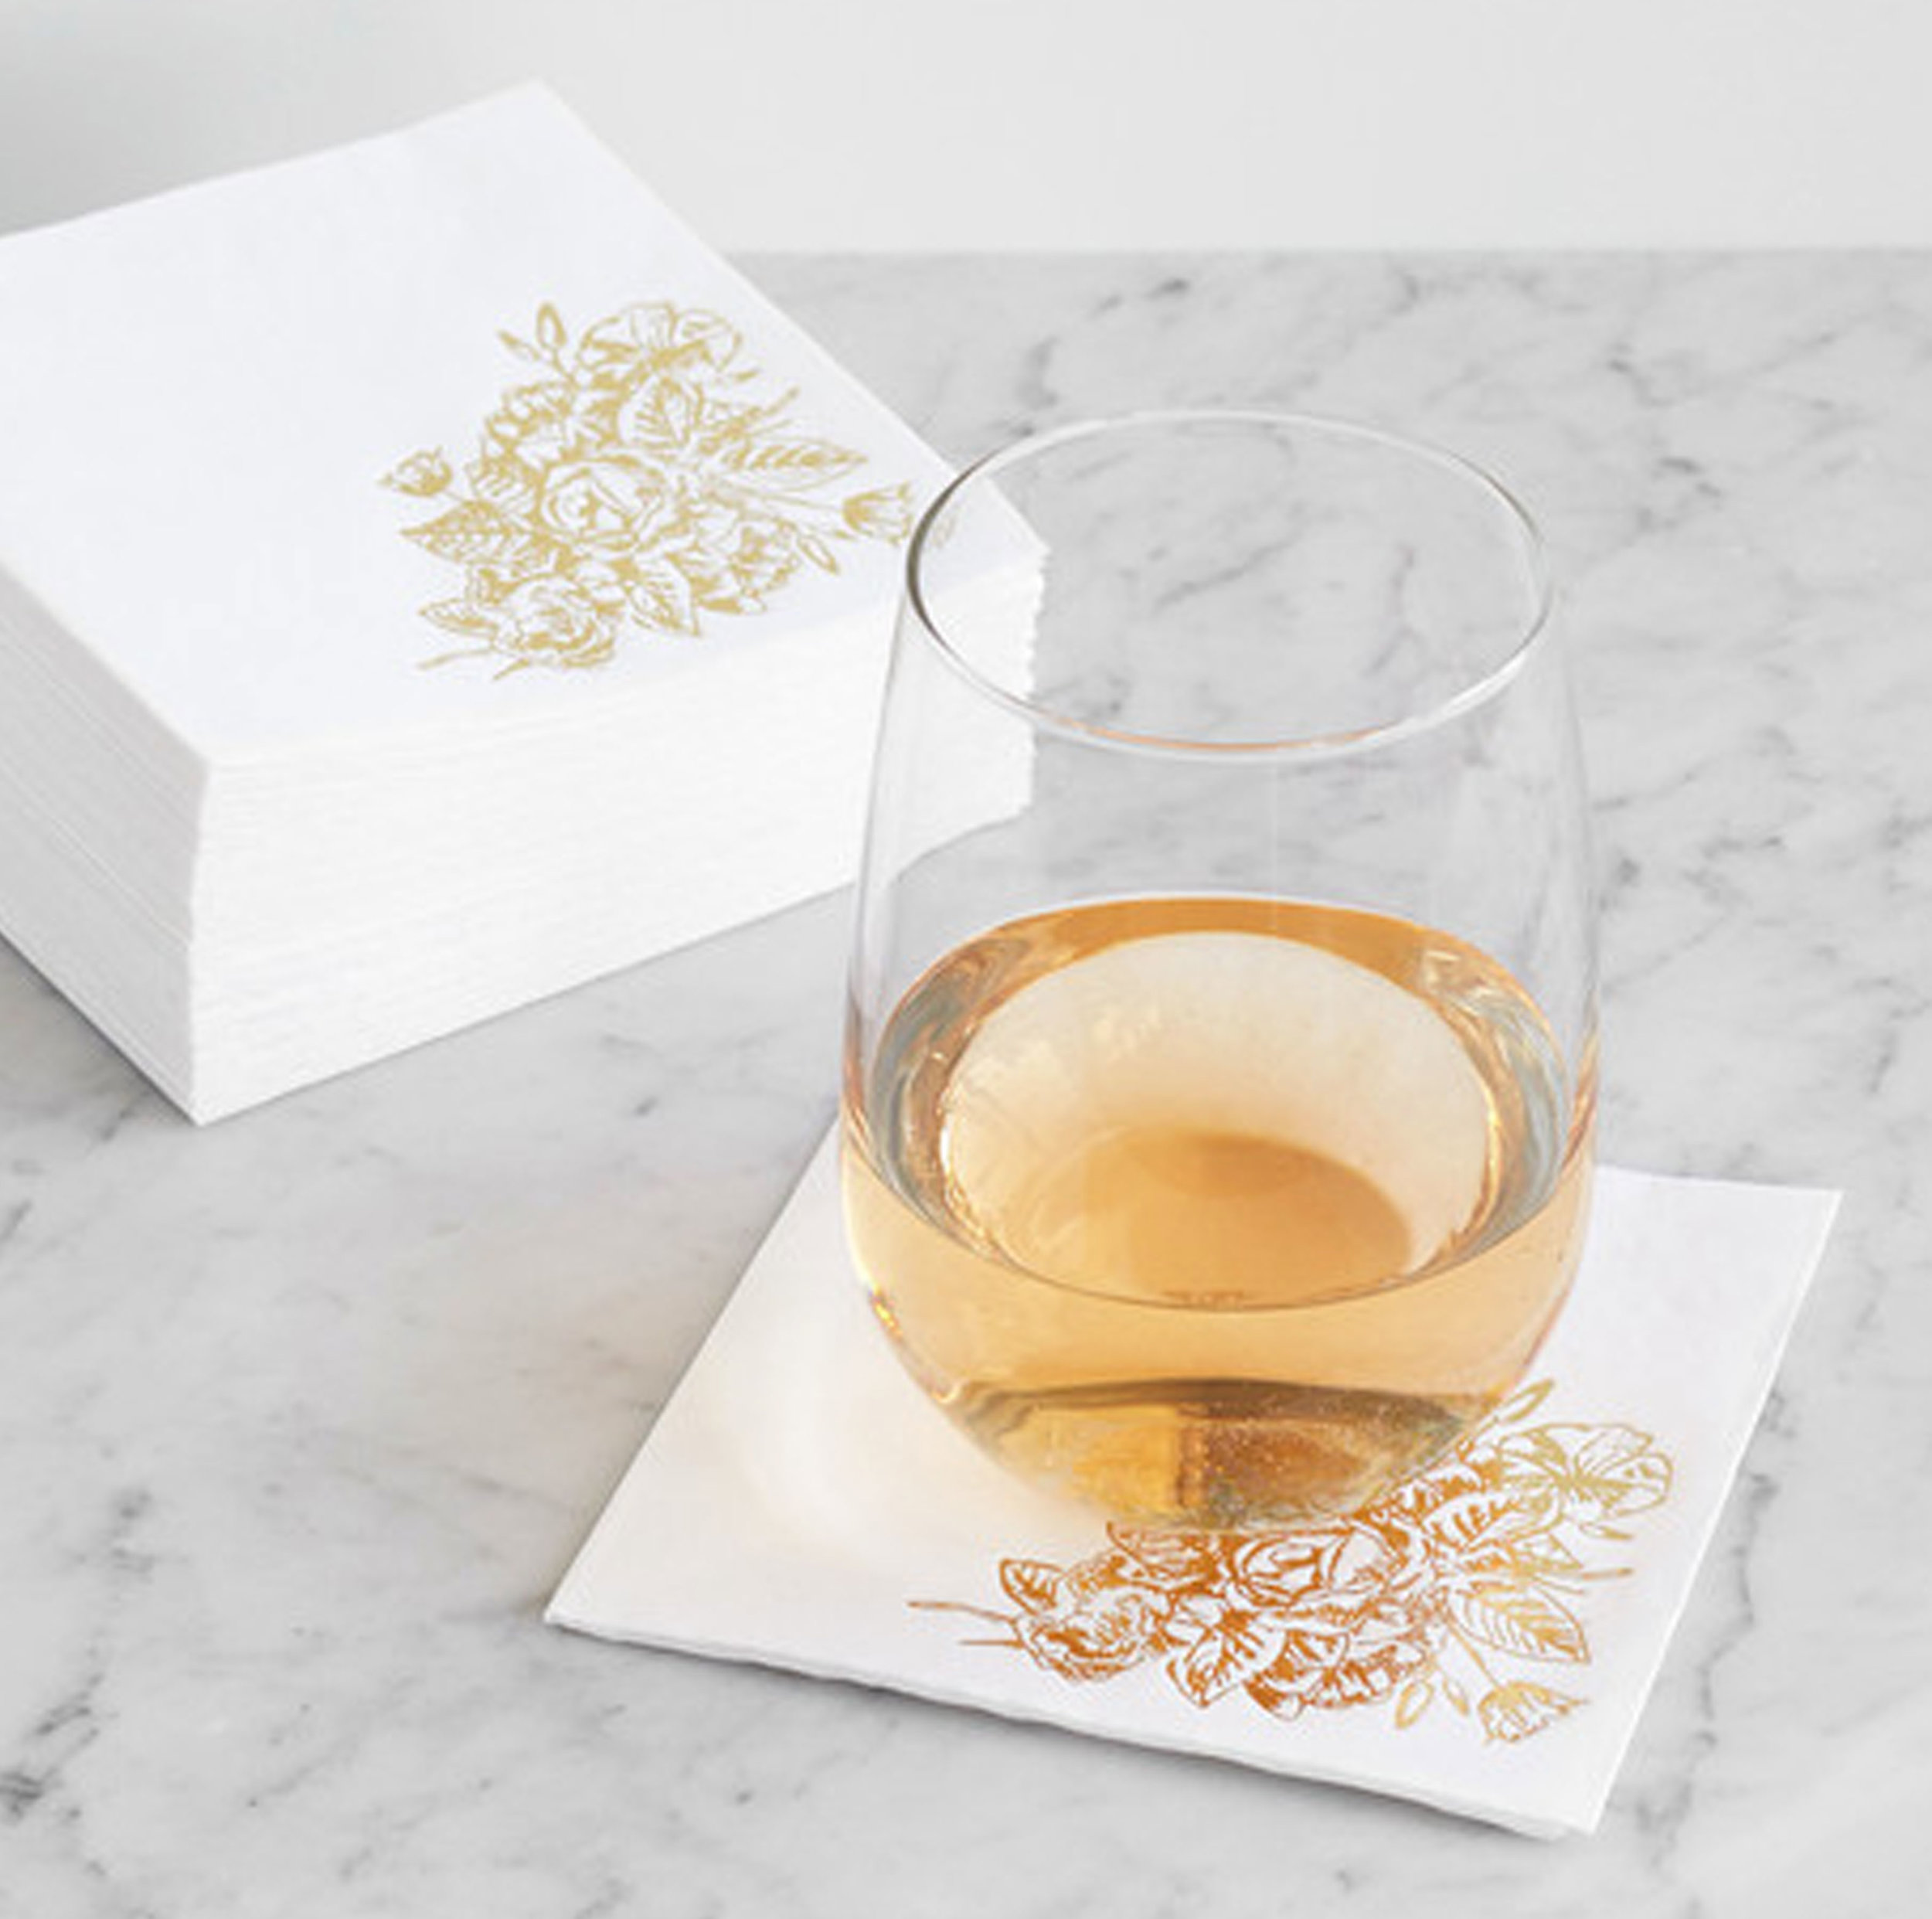 Gilded-Wildflowers-cocktail-napkins.jpg